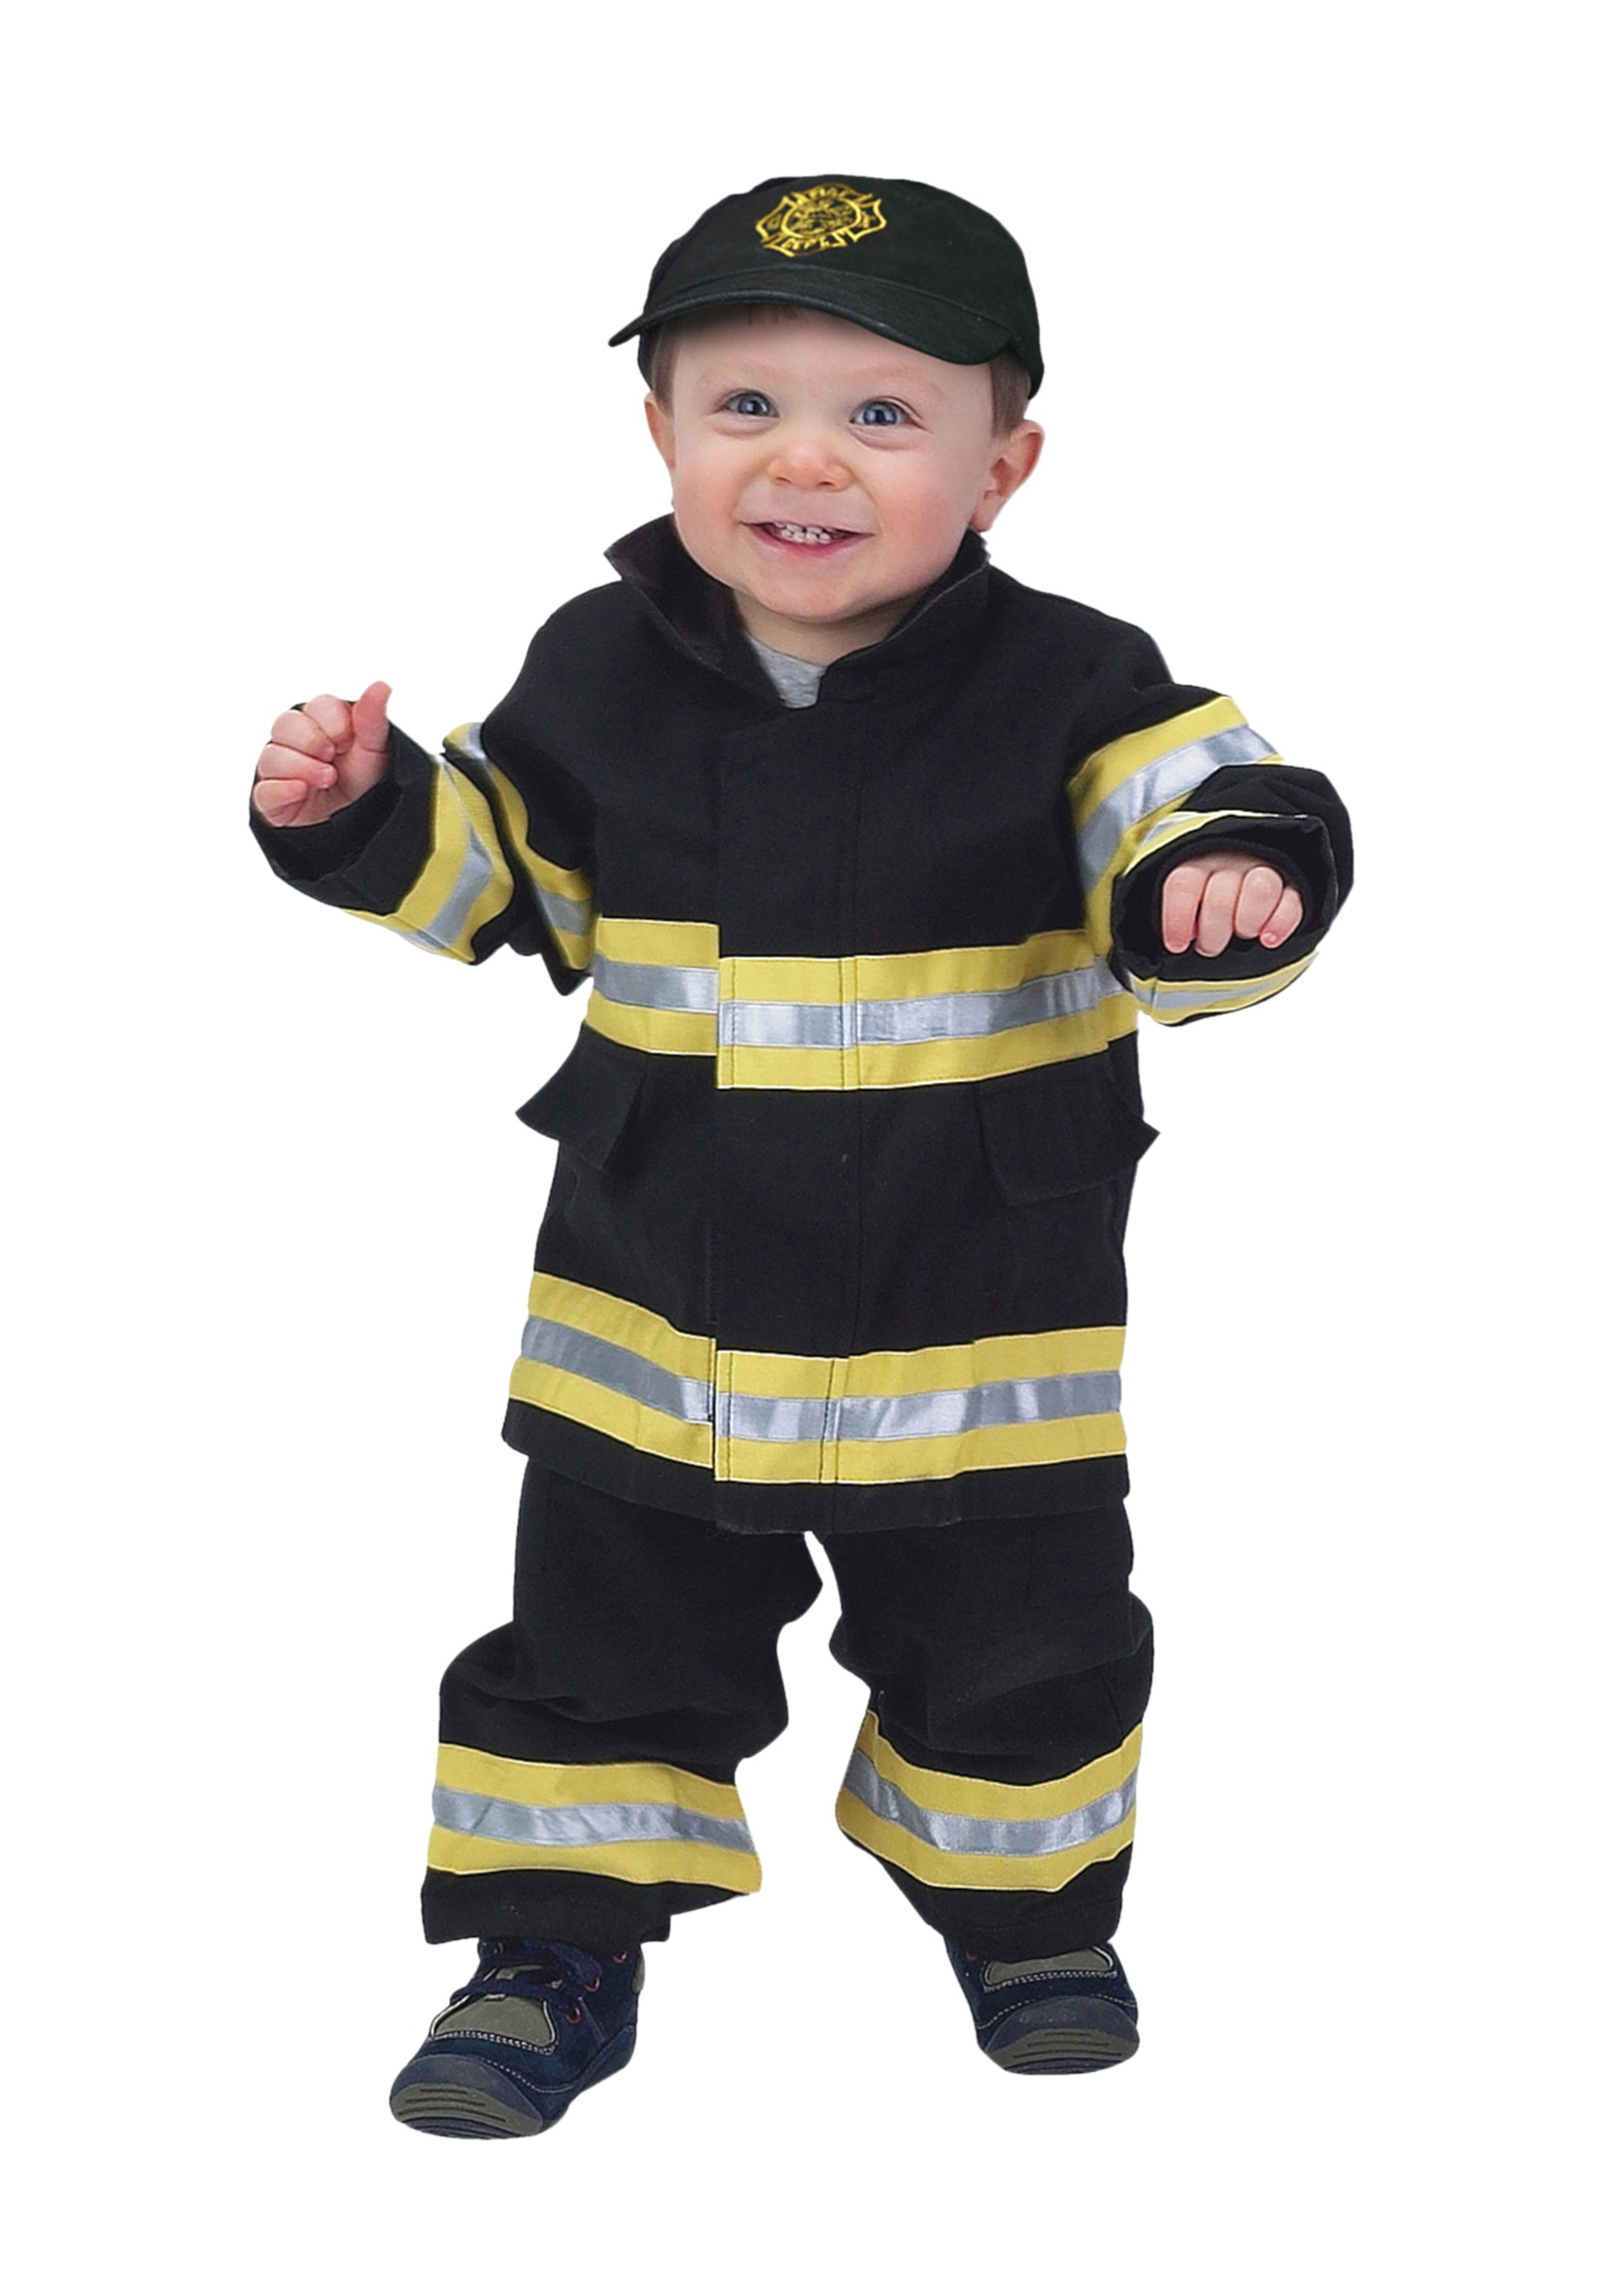 Fireman Child Accessory Kit Toddler Black And Yellow Firefighter Costume